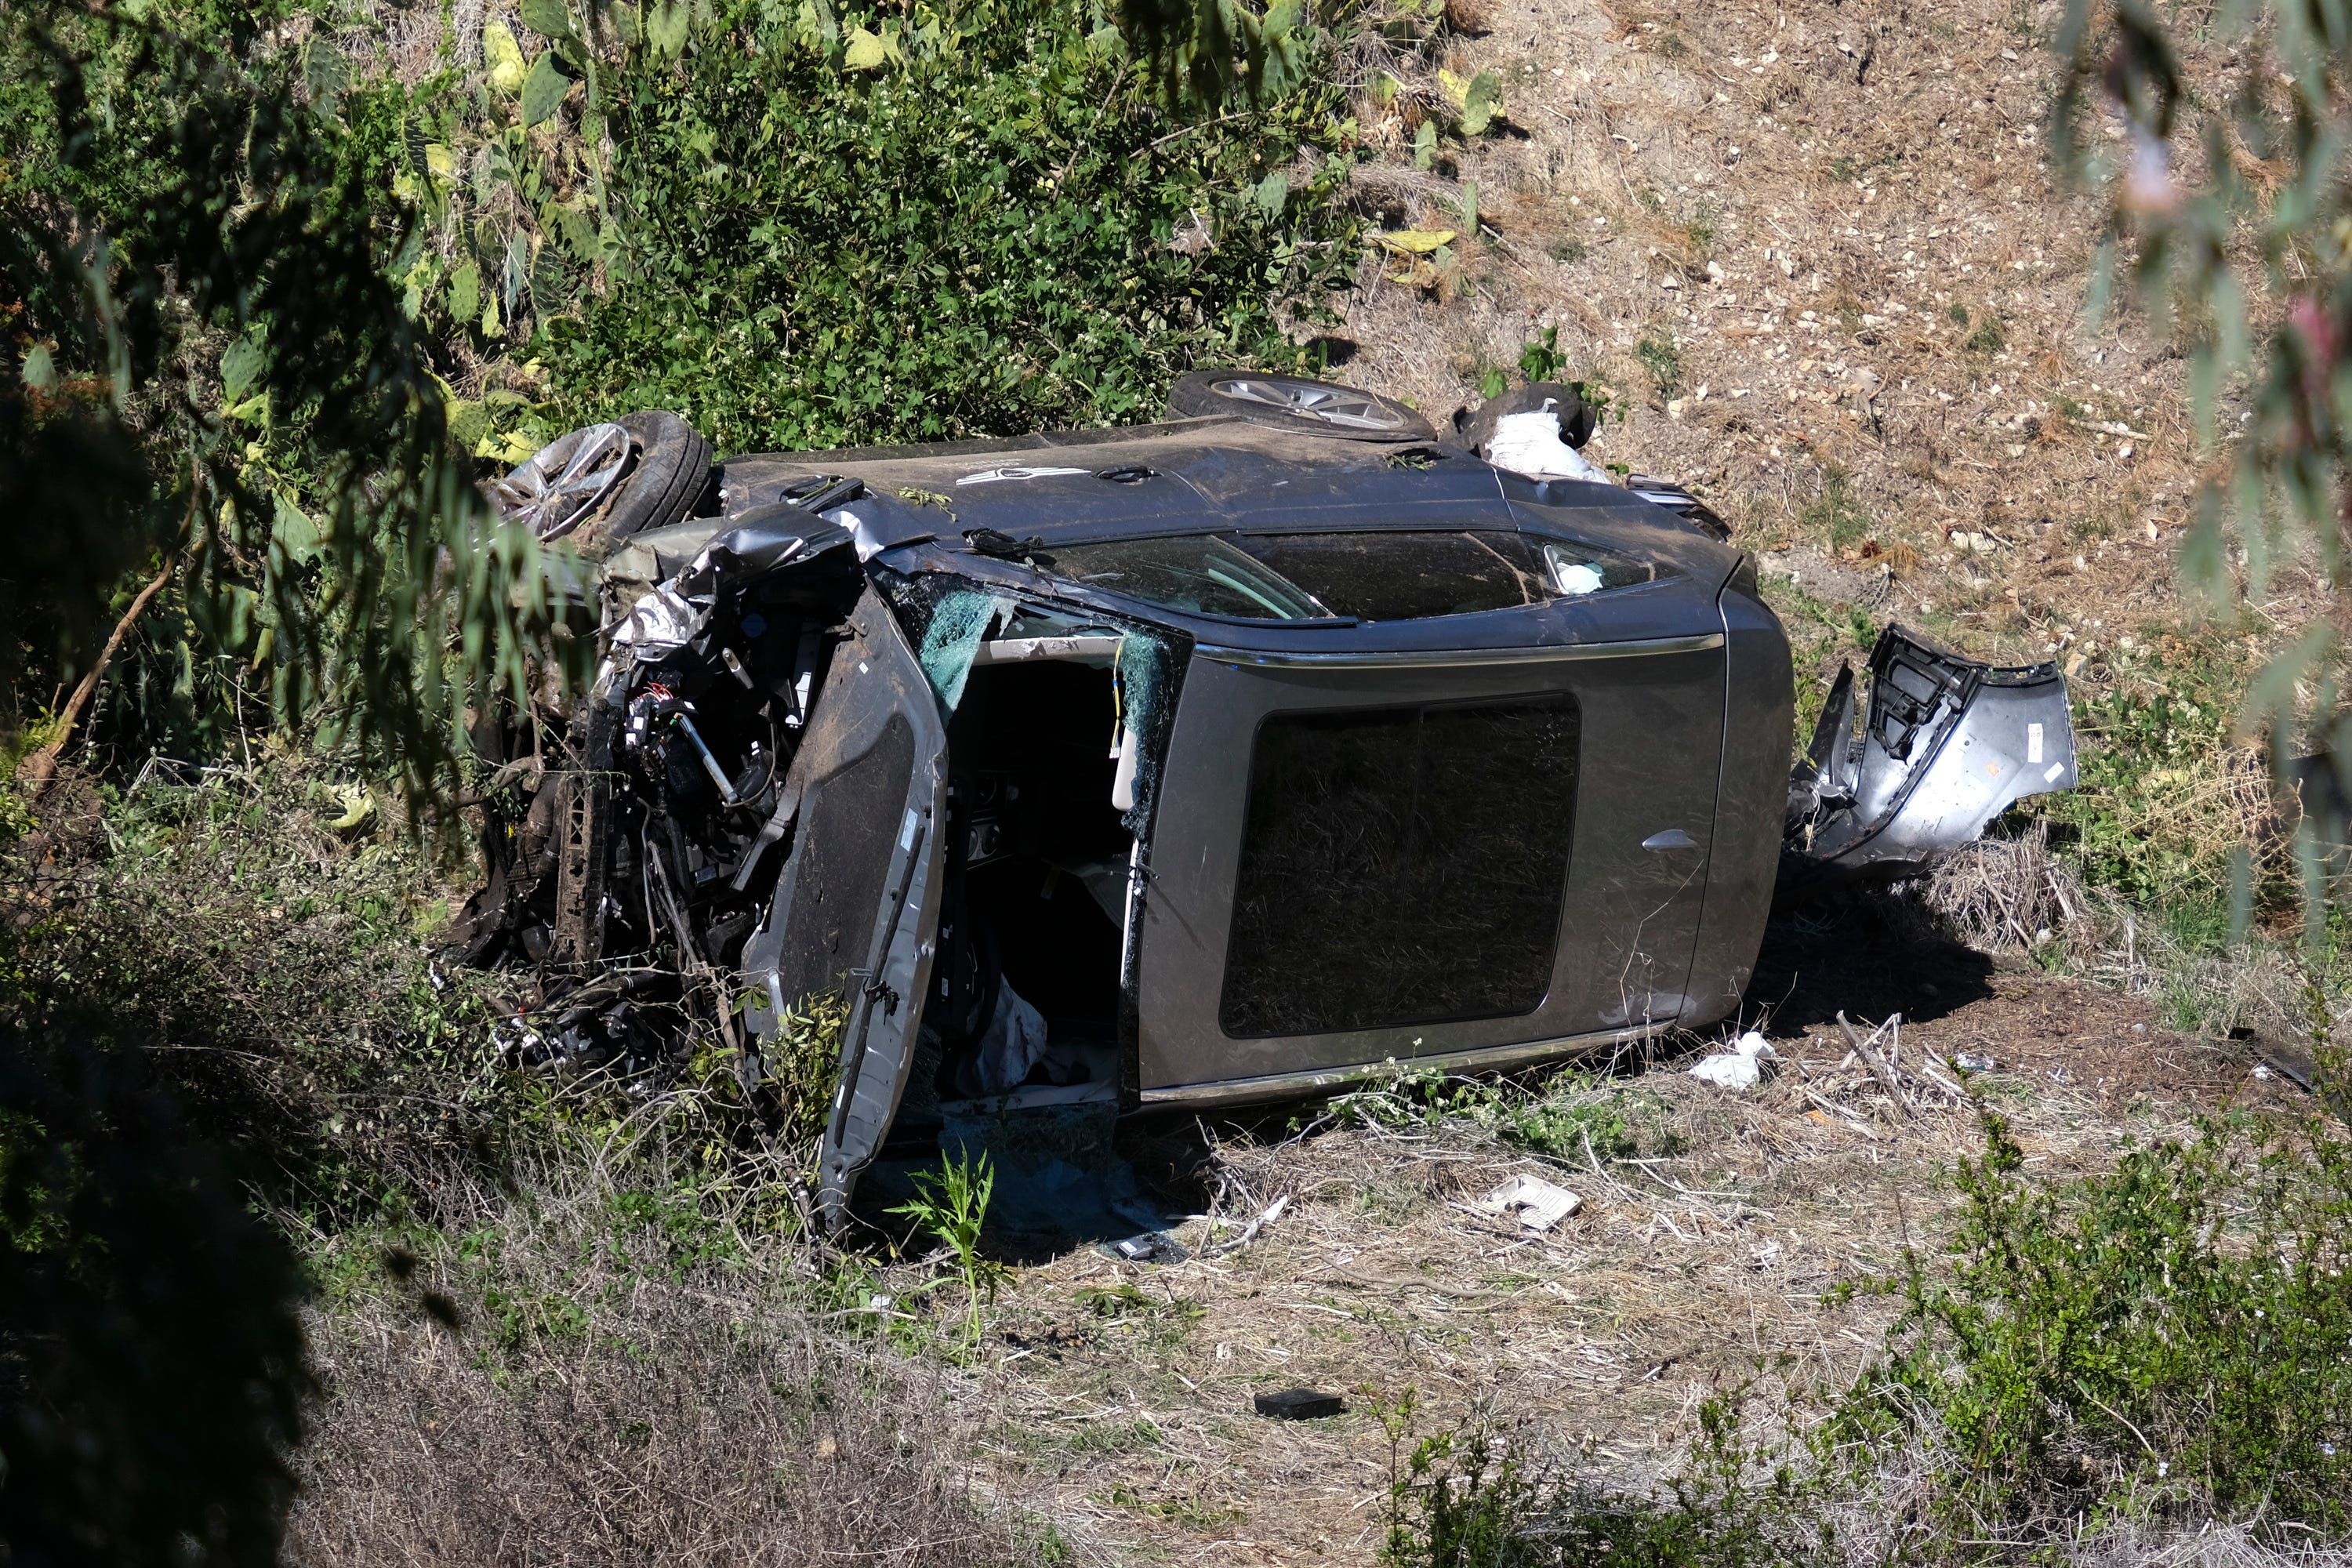 Tiger Woods accident: Photos from the scene of Woods' single-car crash